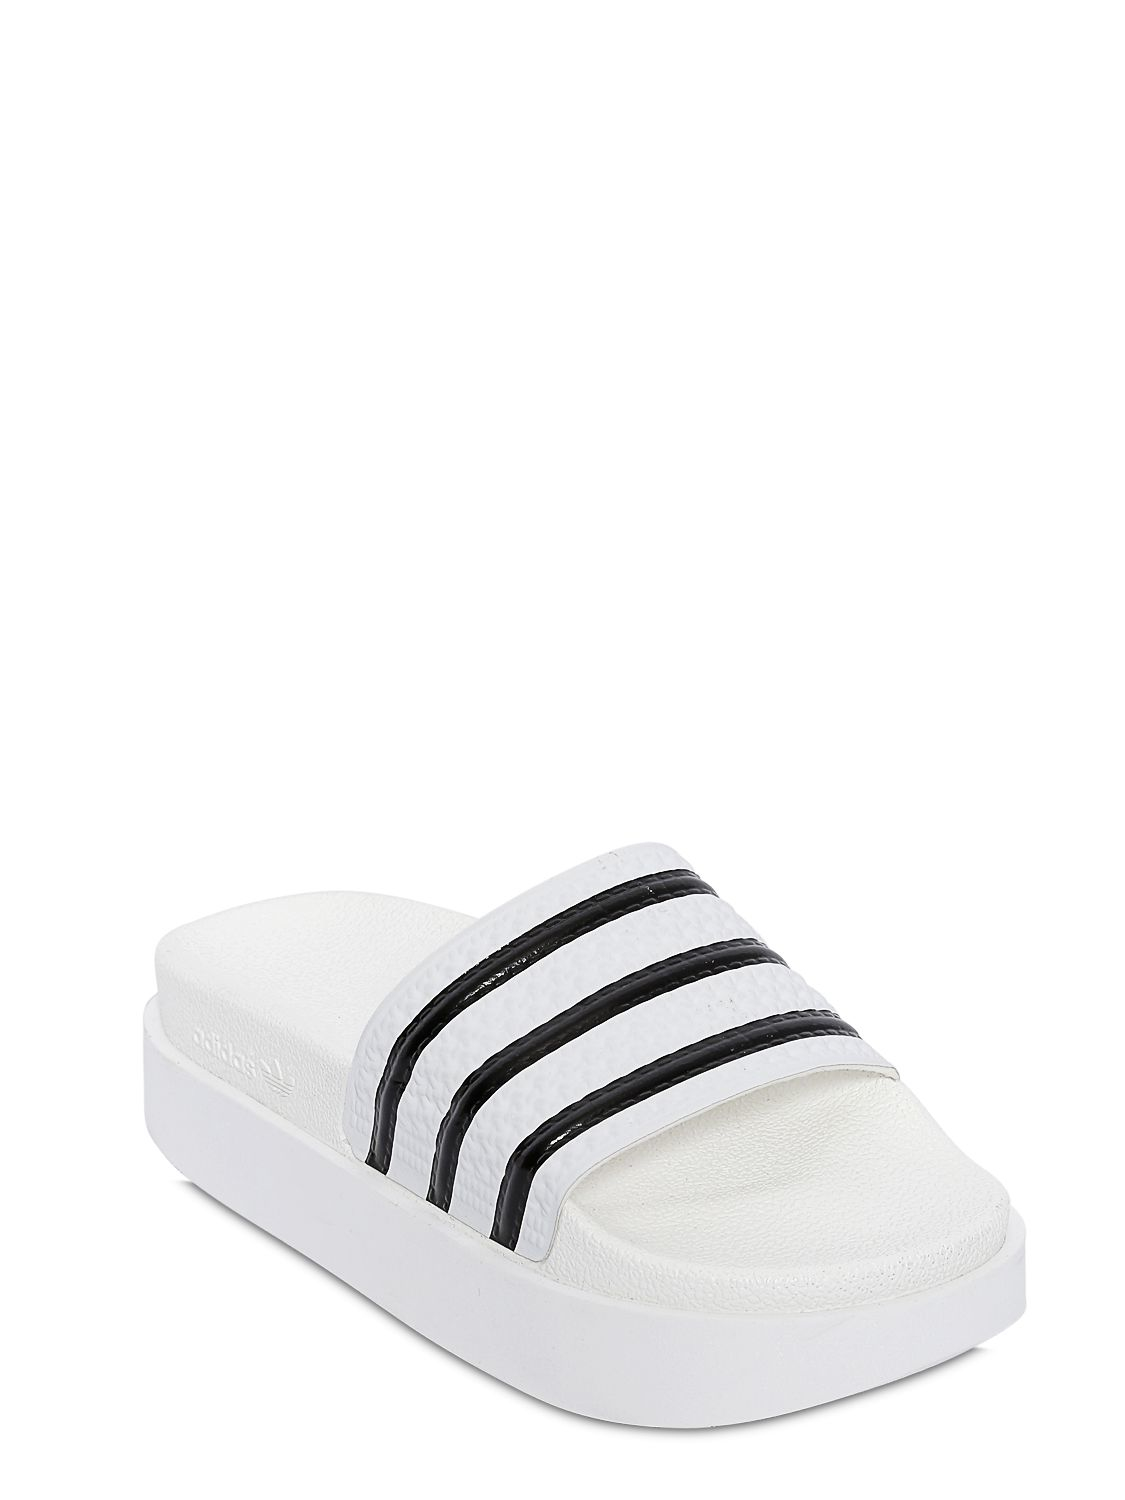 5b633a340ba052 Lyst - adidas Originals Adilette Bold Rubber Slides in White